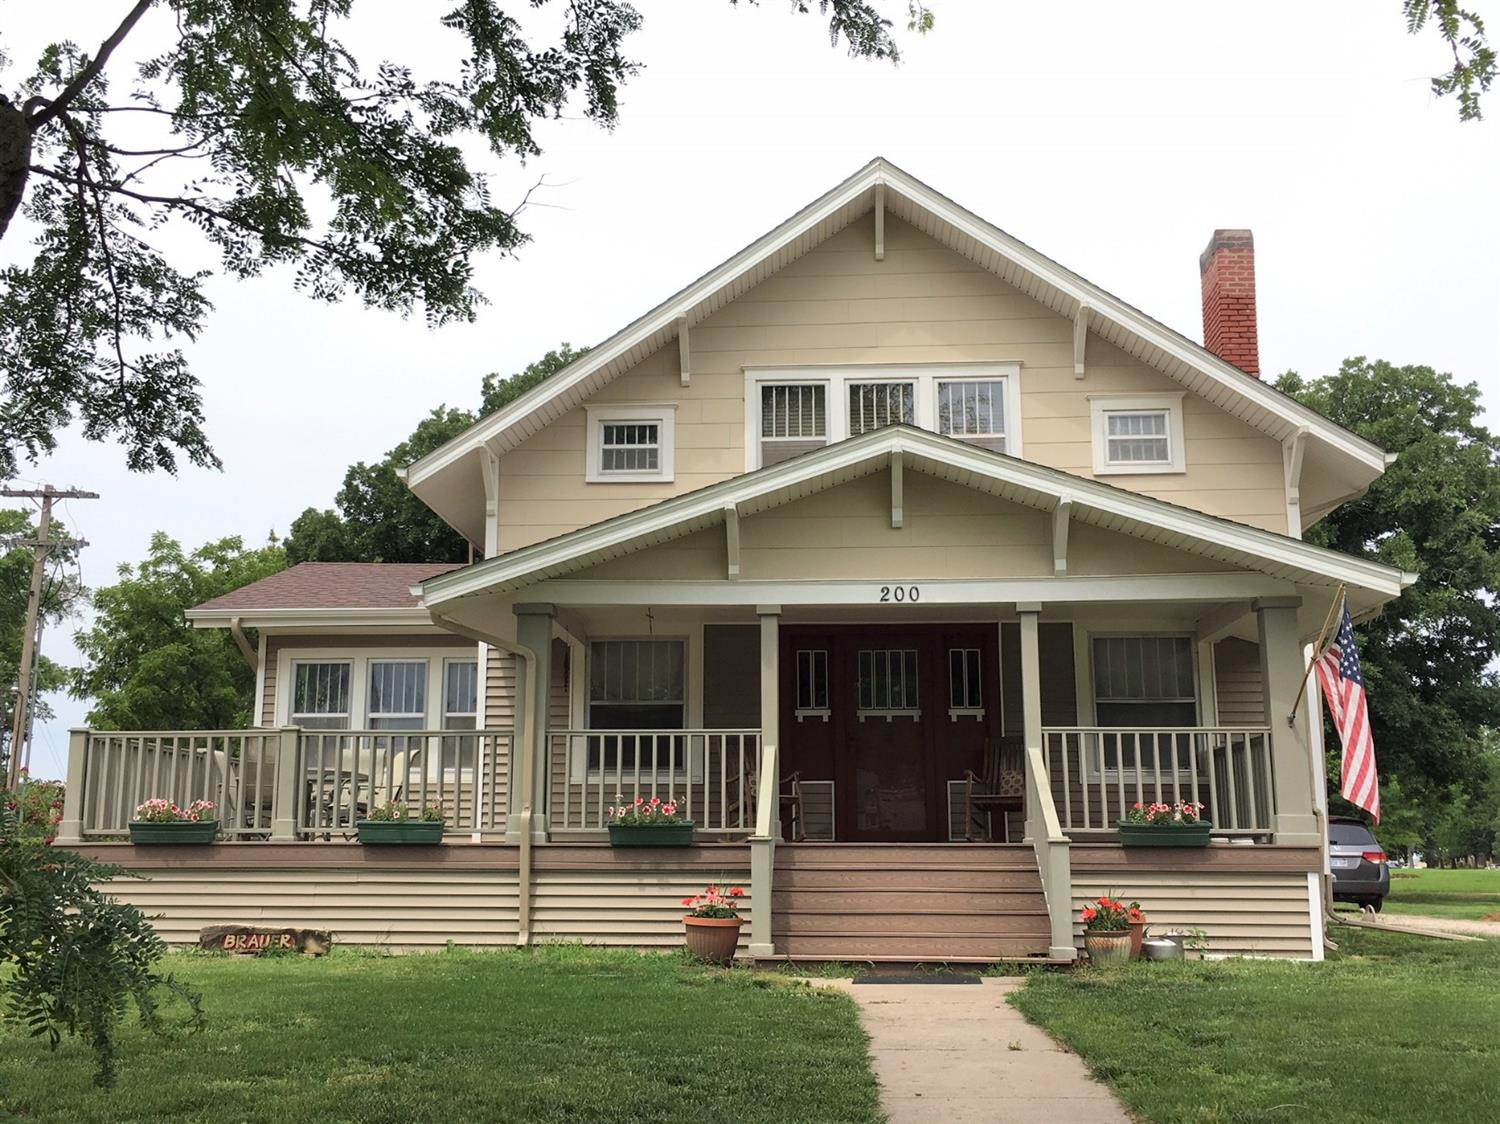 REDUCED over $15,000 from original list price!! CLASSIC character & charm PLUS, Great location. Large corner lot. Golf course is just a swing away! 4 bd/1.75 bath with BEAUTIFUL, original woodwork, built-in cabinets, hardwood floors, large rooms & closets with TONS of space. Utility & bath on main floor w/walk in shower. Plus, a cozy sunroom with an abundance of natural light. Full, unfinished basement. Partial privacy fence. Call today to view this GORGEOUS home!